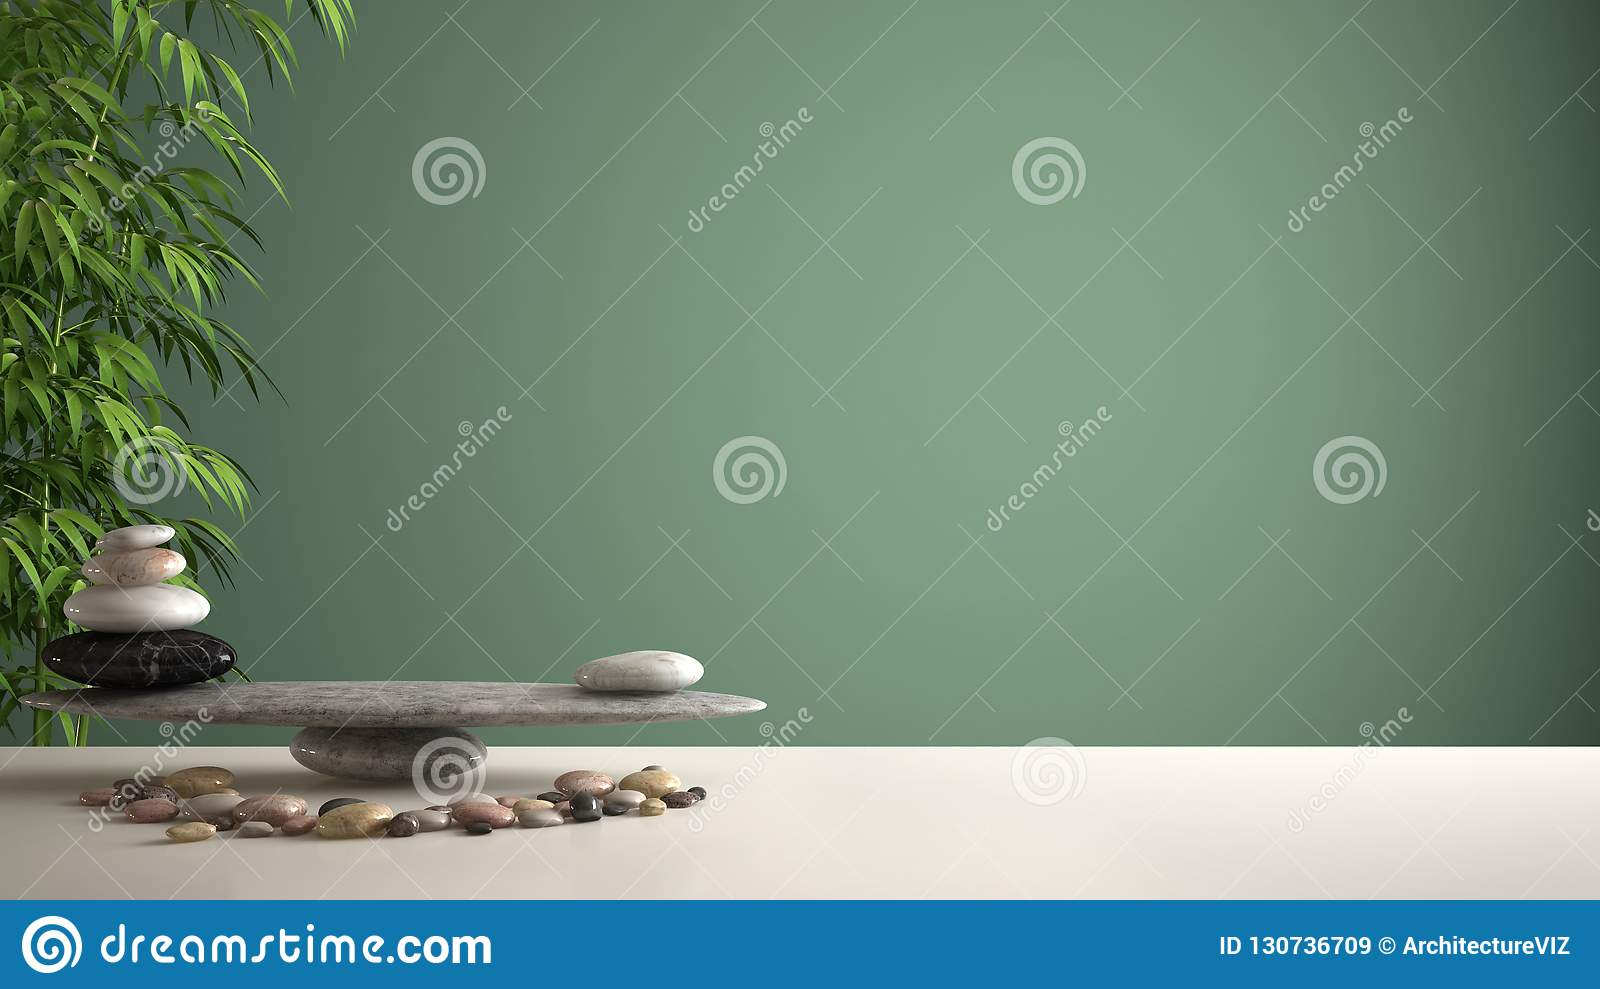 Empty interior design feng shui concept zen idea, white table or shelf with pebble balance and green bamboo, over green background